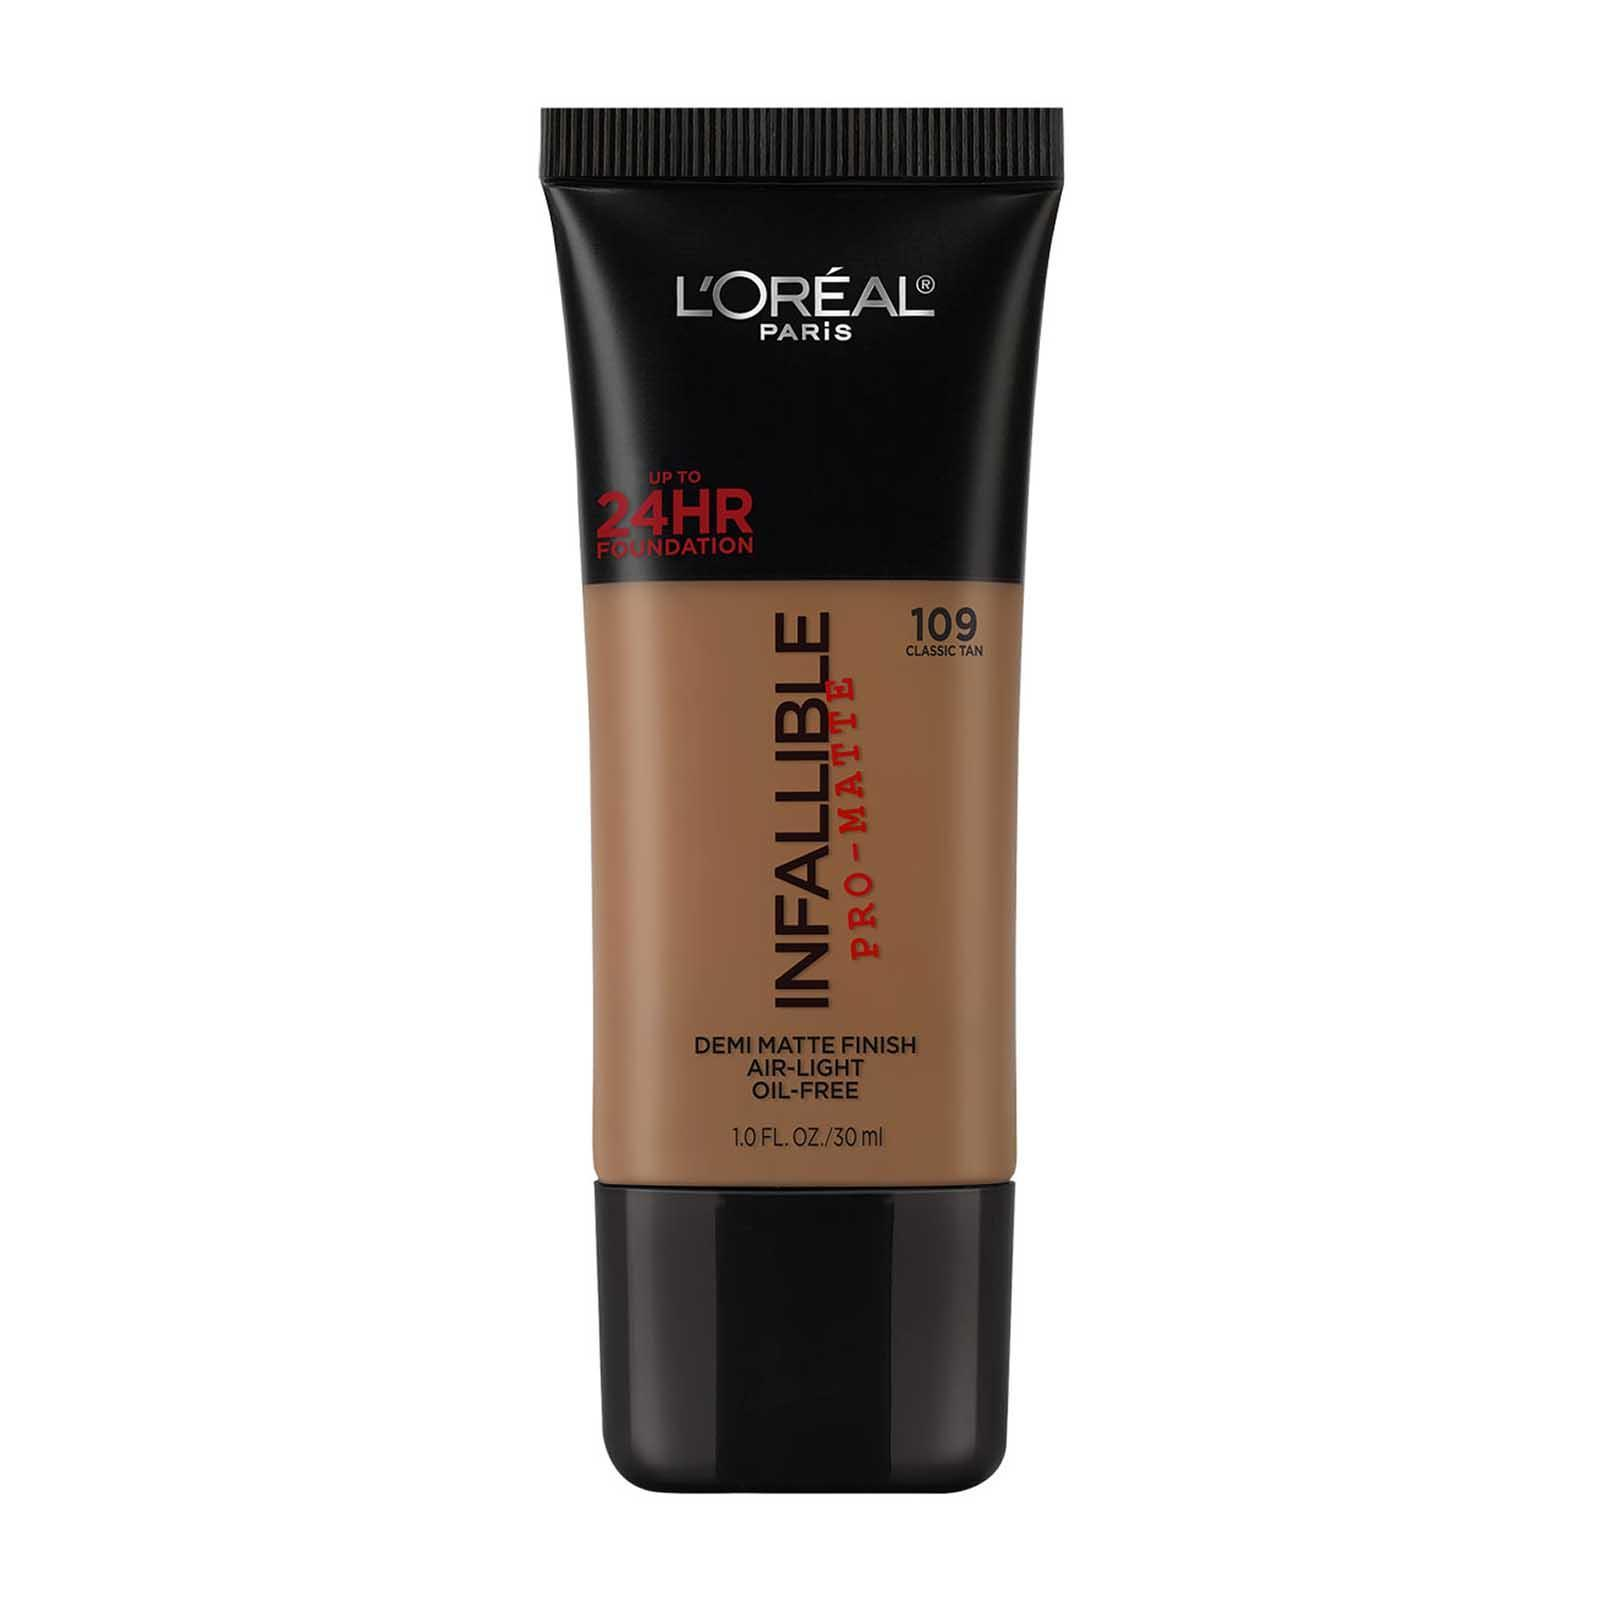 L'Oreal Paris Infallible Pro Matte Foundation 109 - Classic Tan